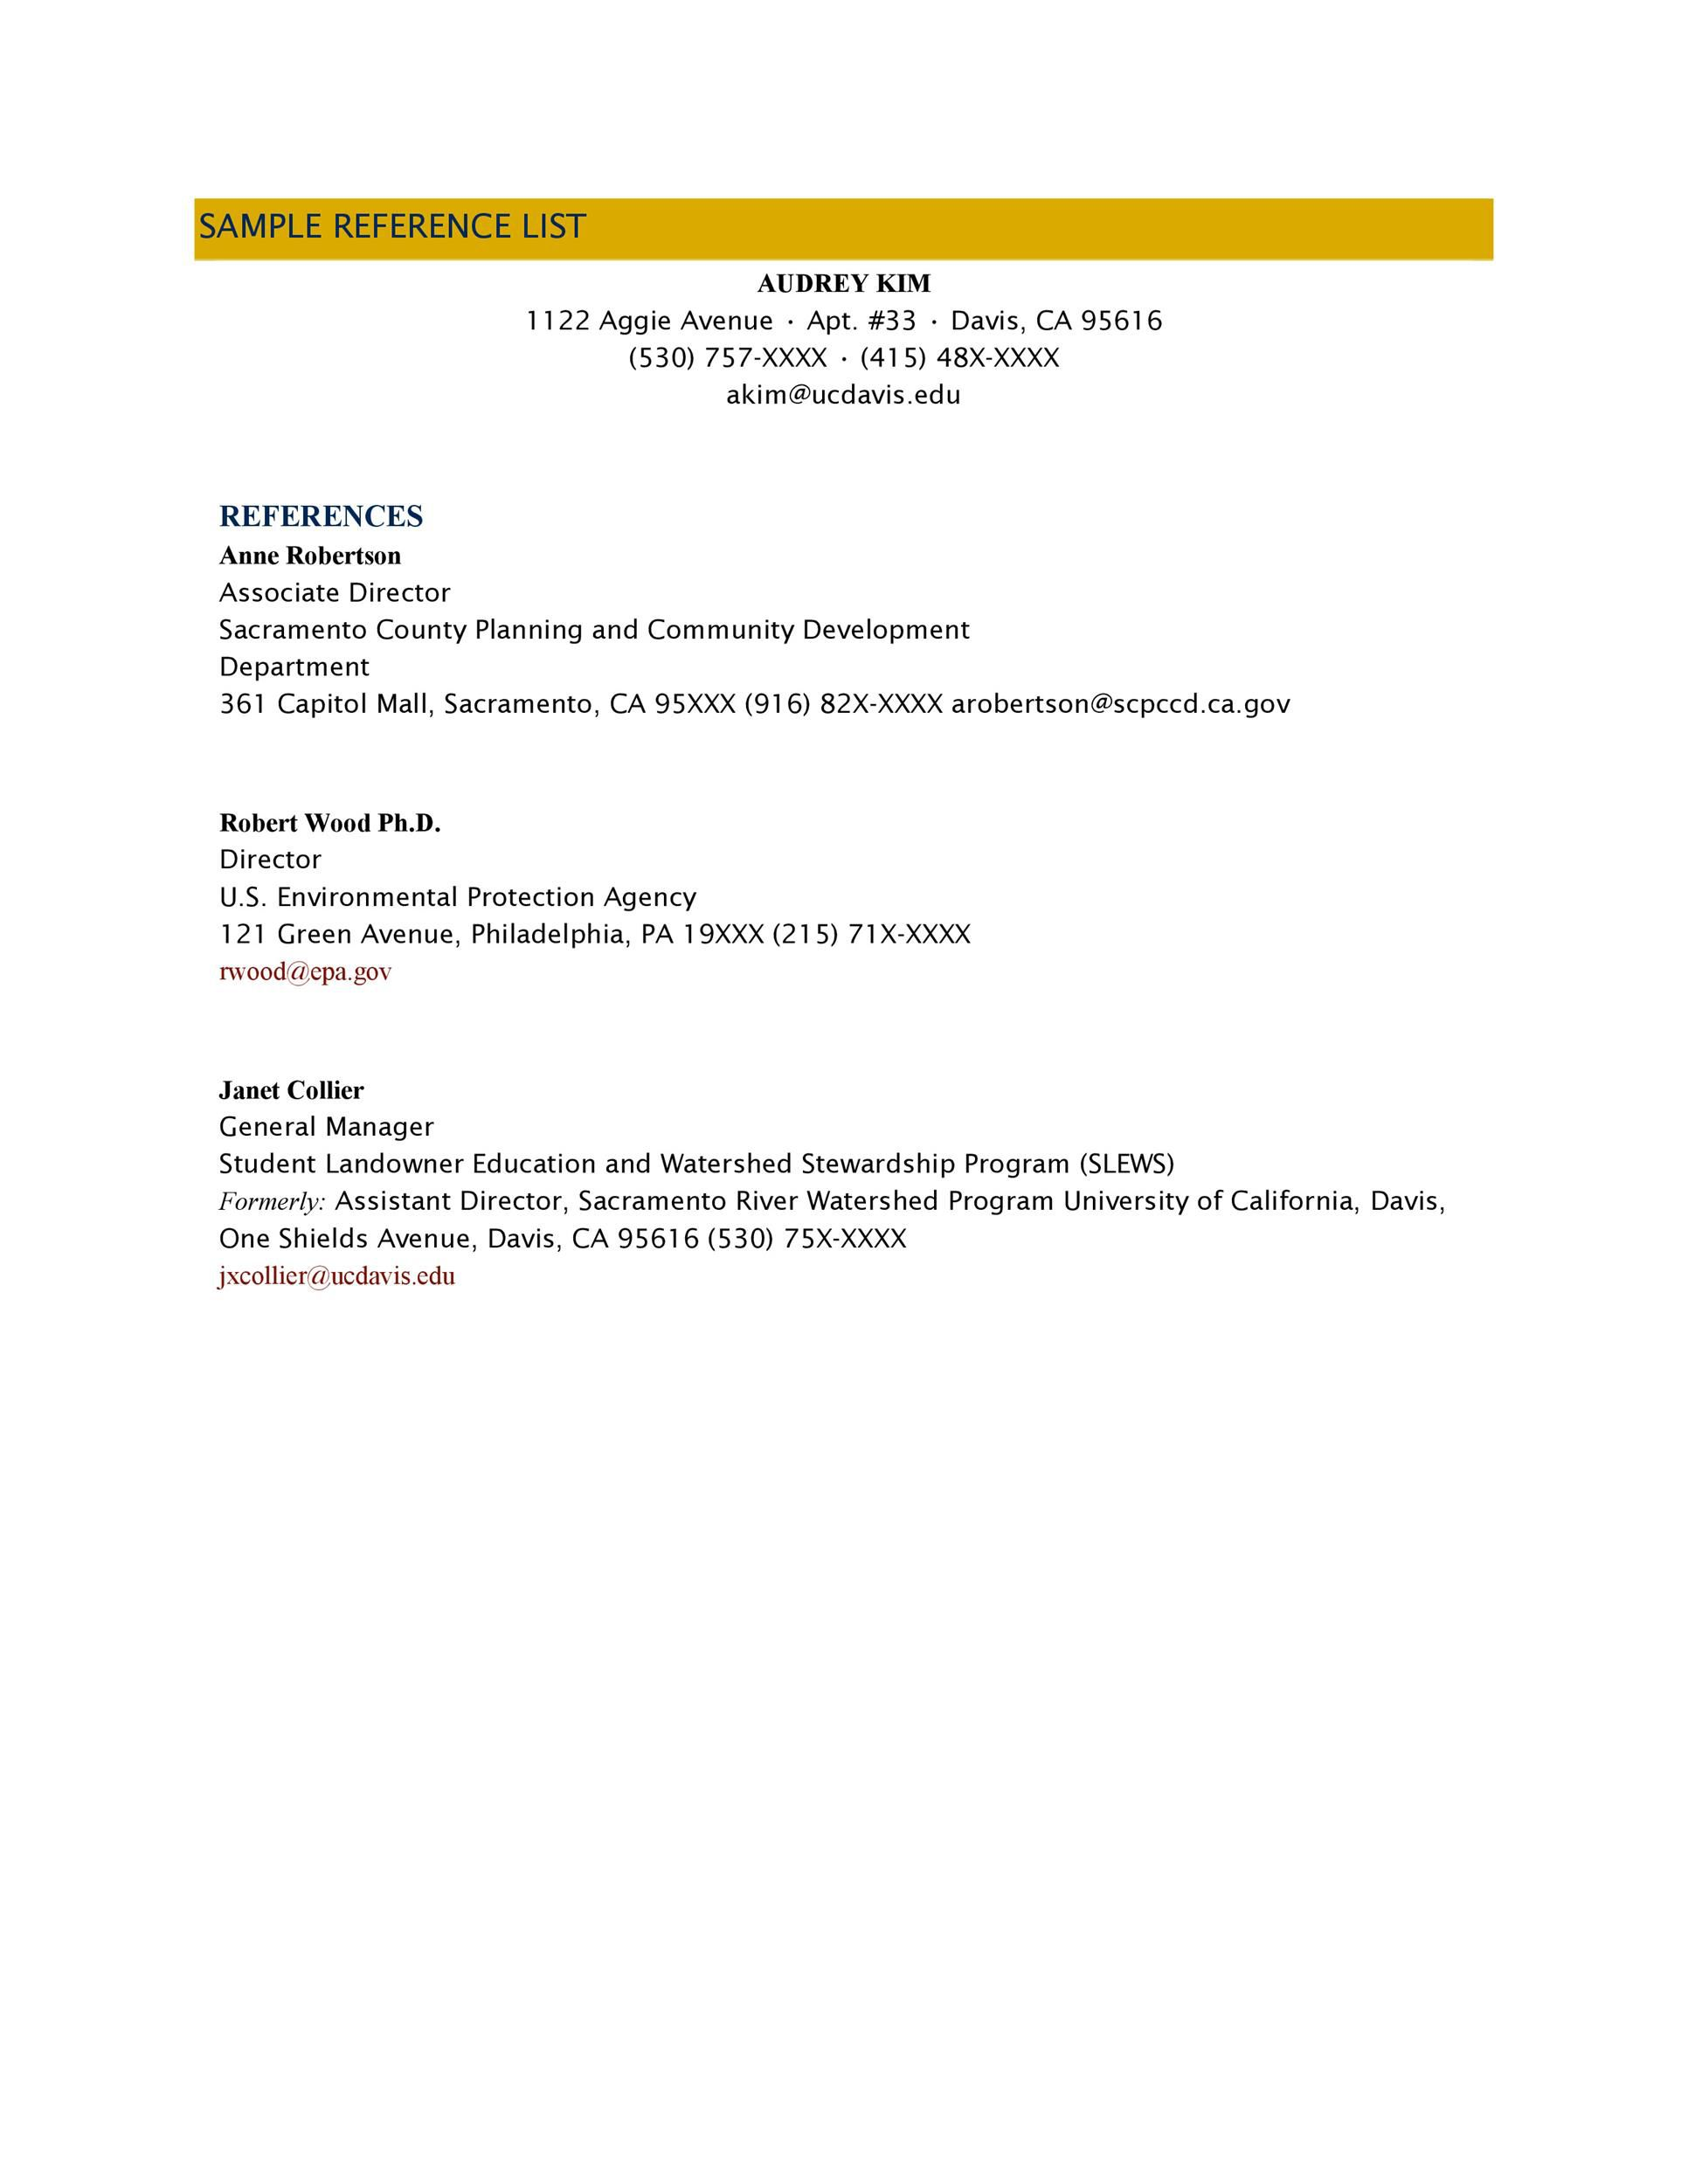 007 Breathtaking List Of Reference Template Idea  Employment Format Professional FreeFull